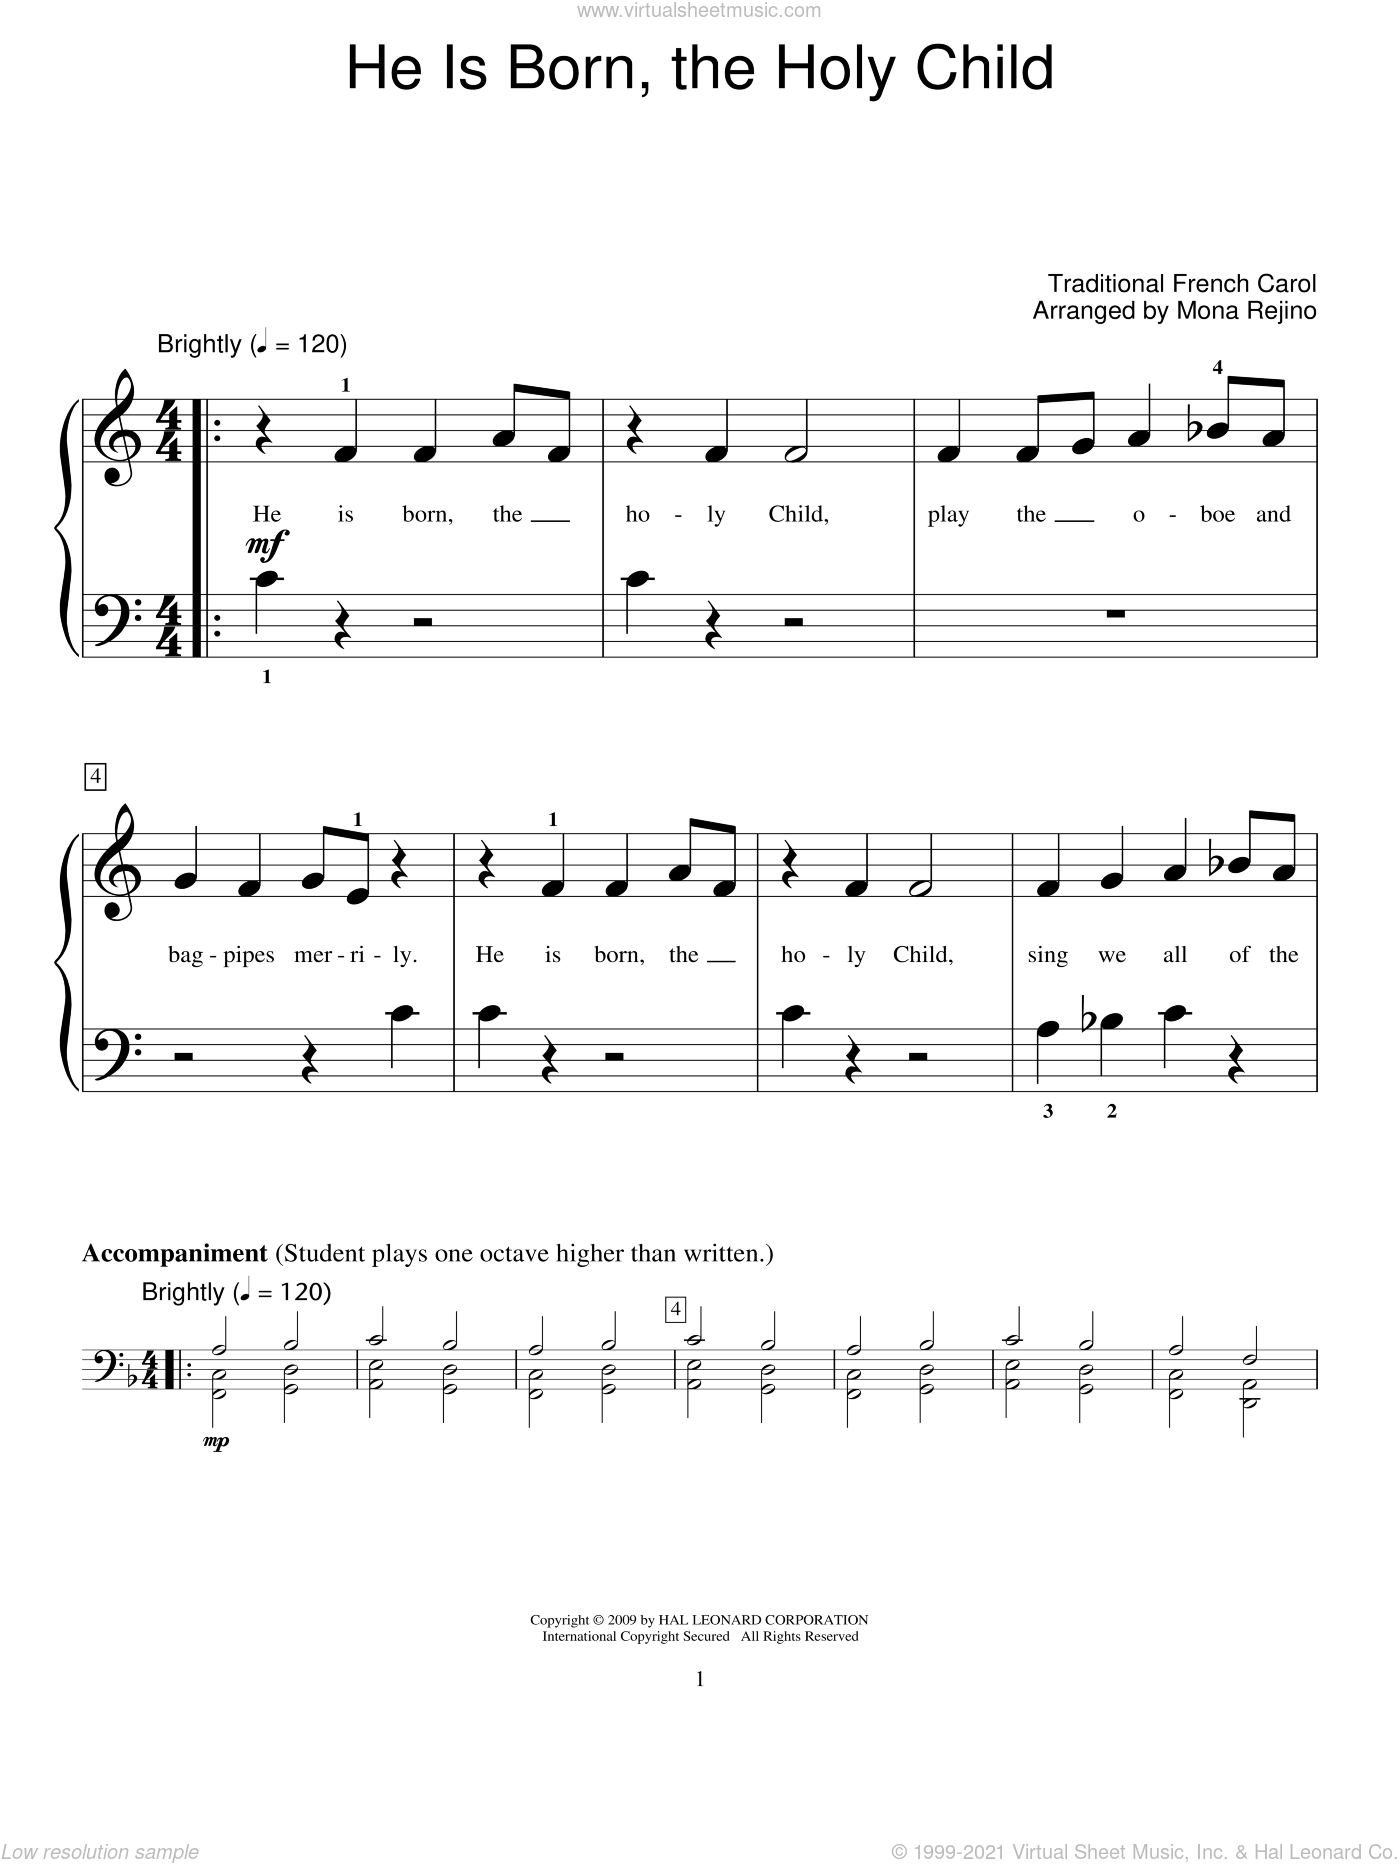 He Is Born, The Holy Child (Il Est Ne, Le Divin Enfant) sheet music for piano solo (elementary)  and Mona Rejino. Score Image Preview.